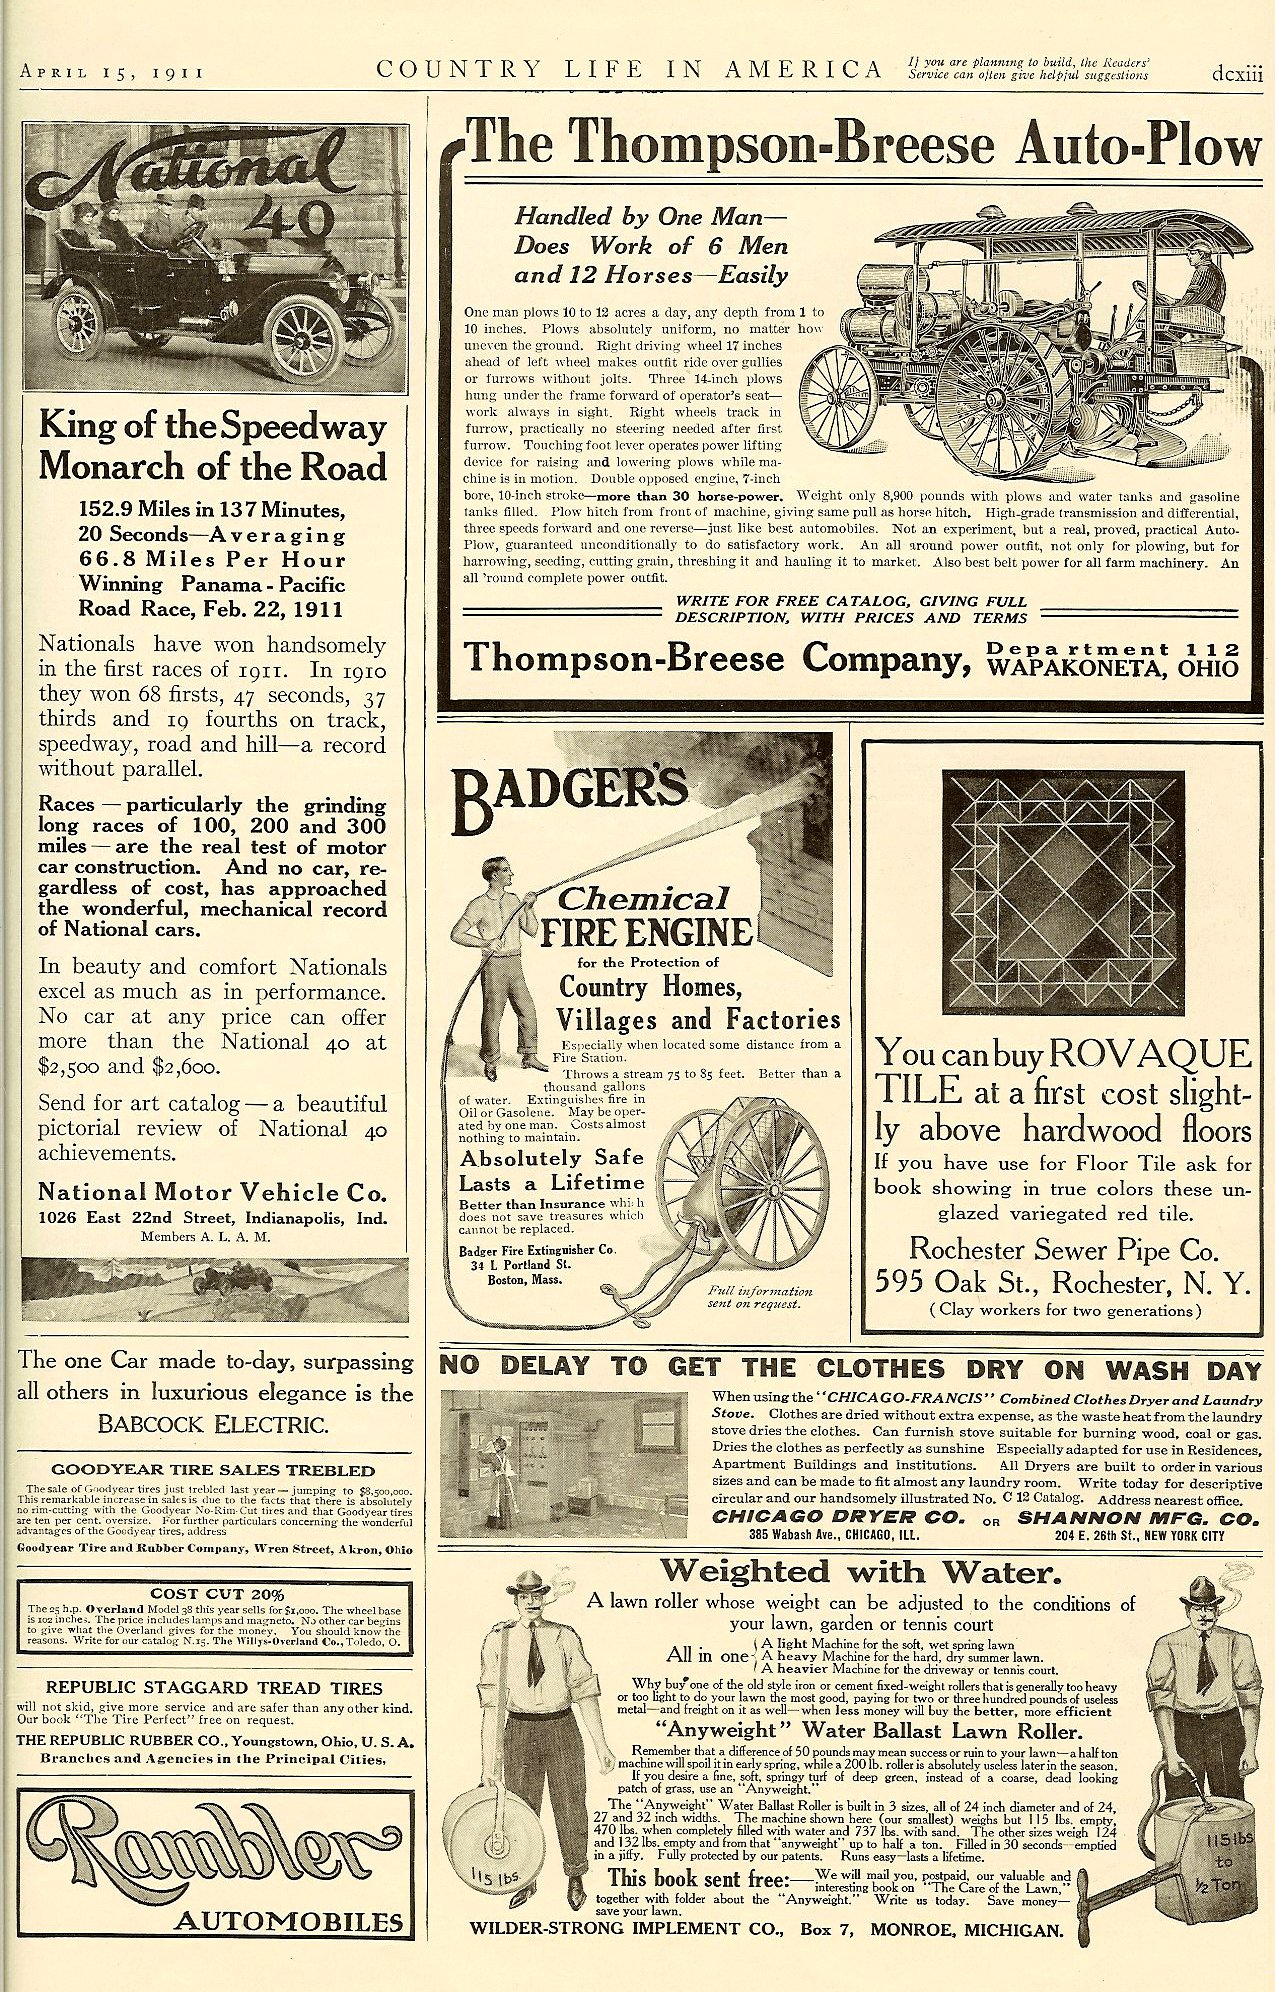 """1911 4 15 NATIONAL National """"King of the Speedway"""" """"Monarch of the Road"""" Country Life in America April 15, 1911 dexiii 10″x14.25″"""